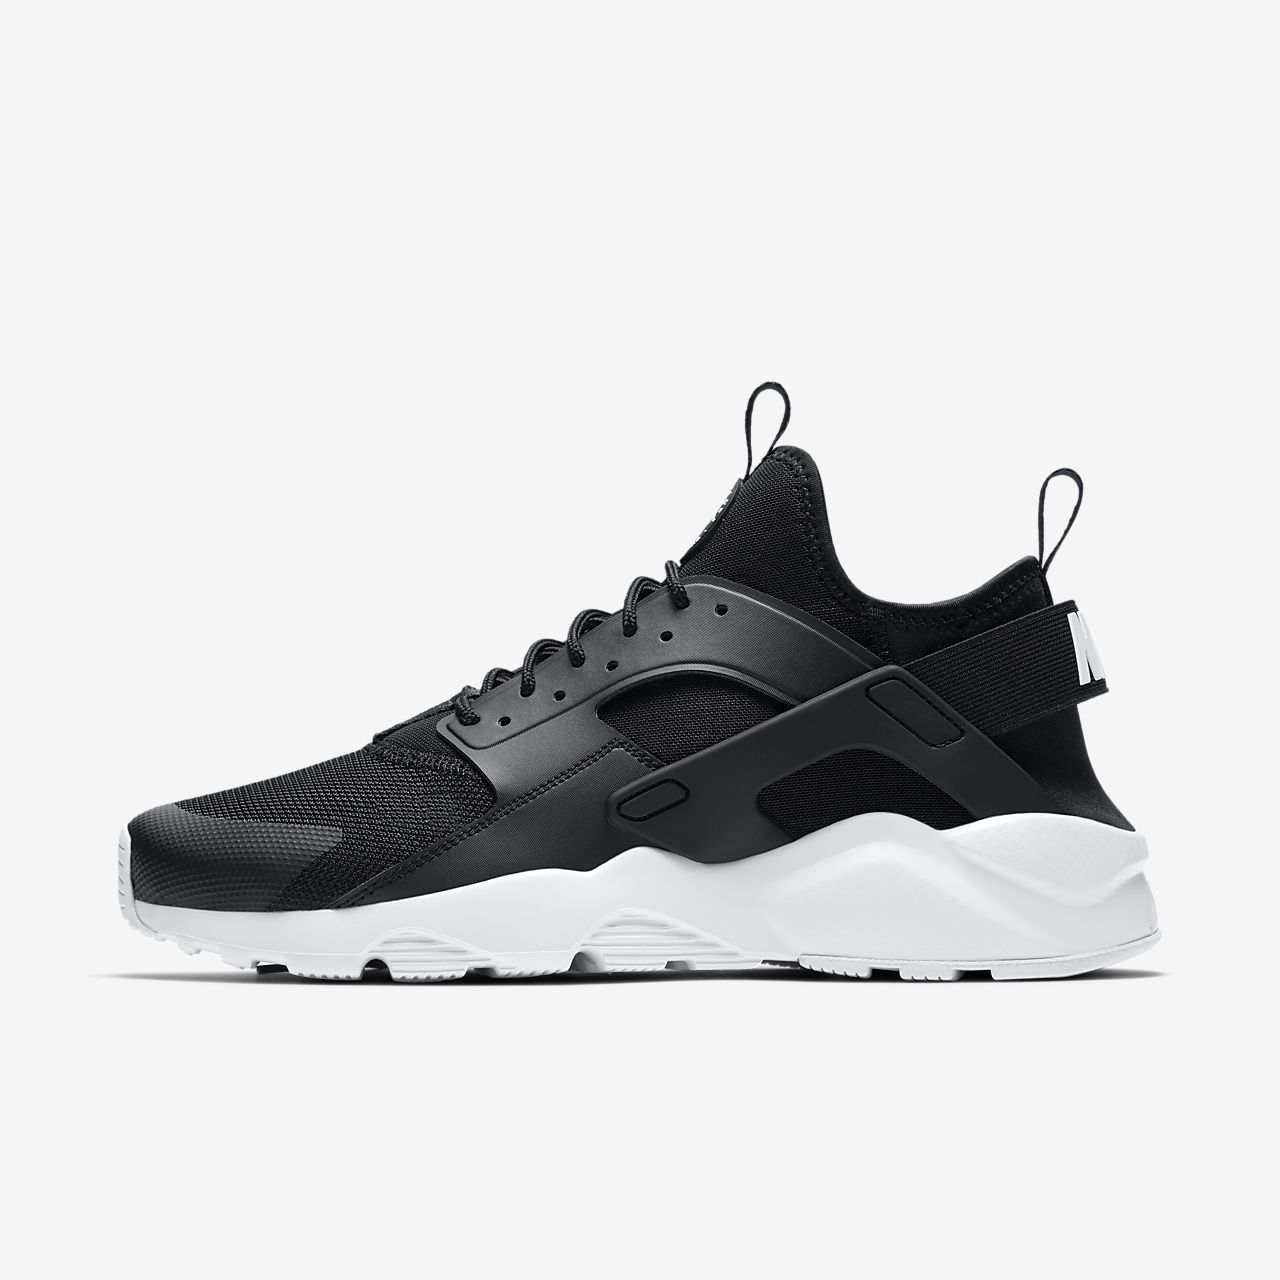 5fec9dea3199 Nike Air Huarache Ultra Men s Shoe. Nike.com GB